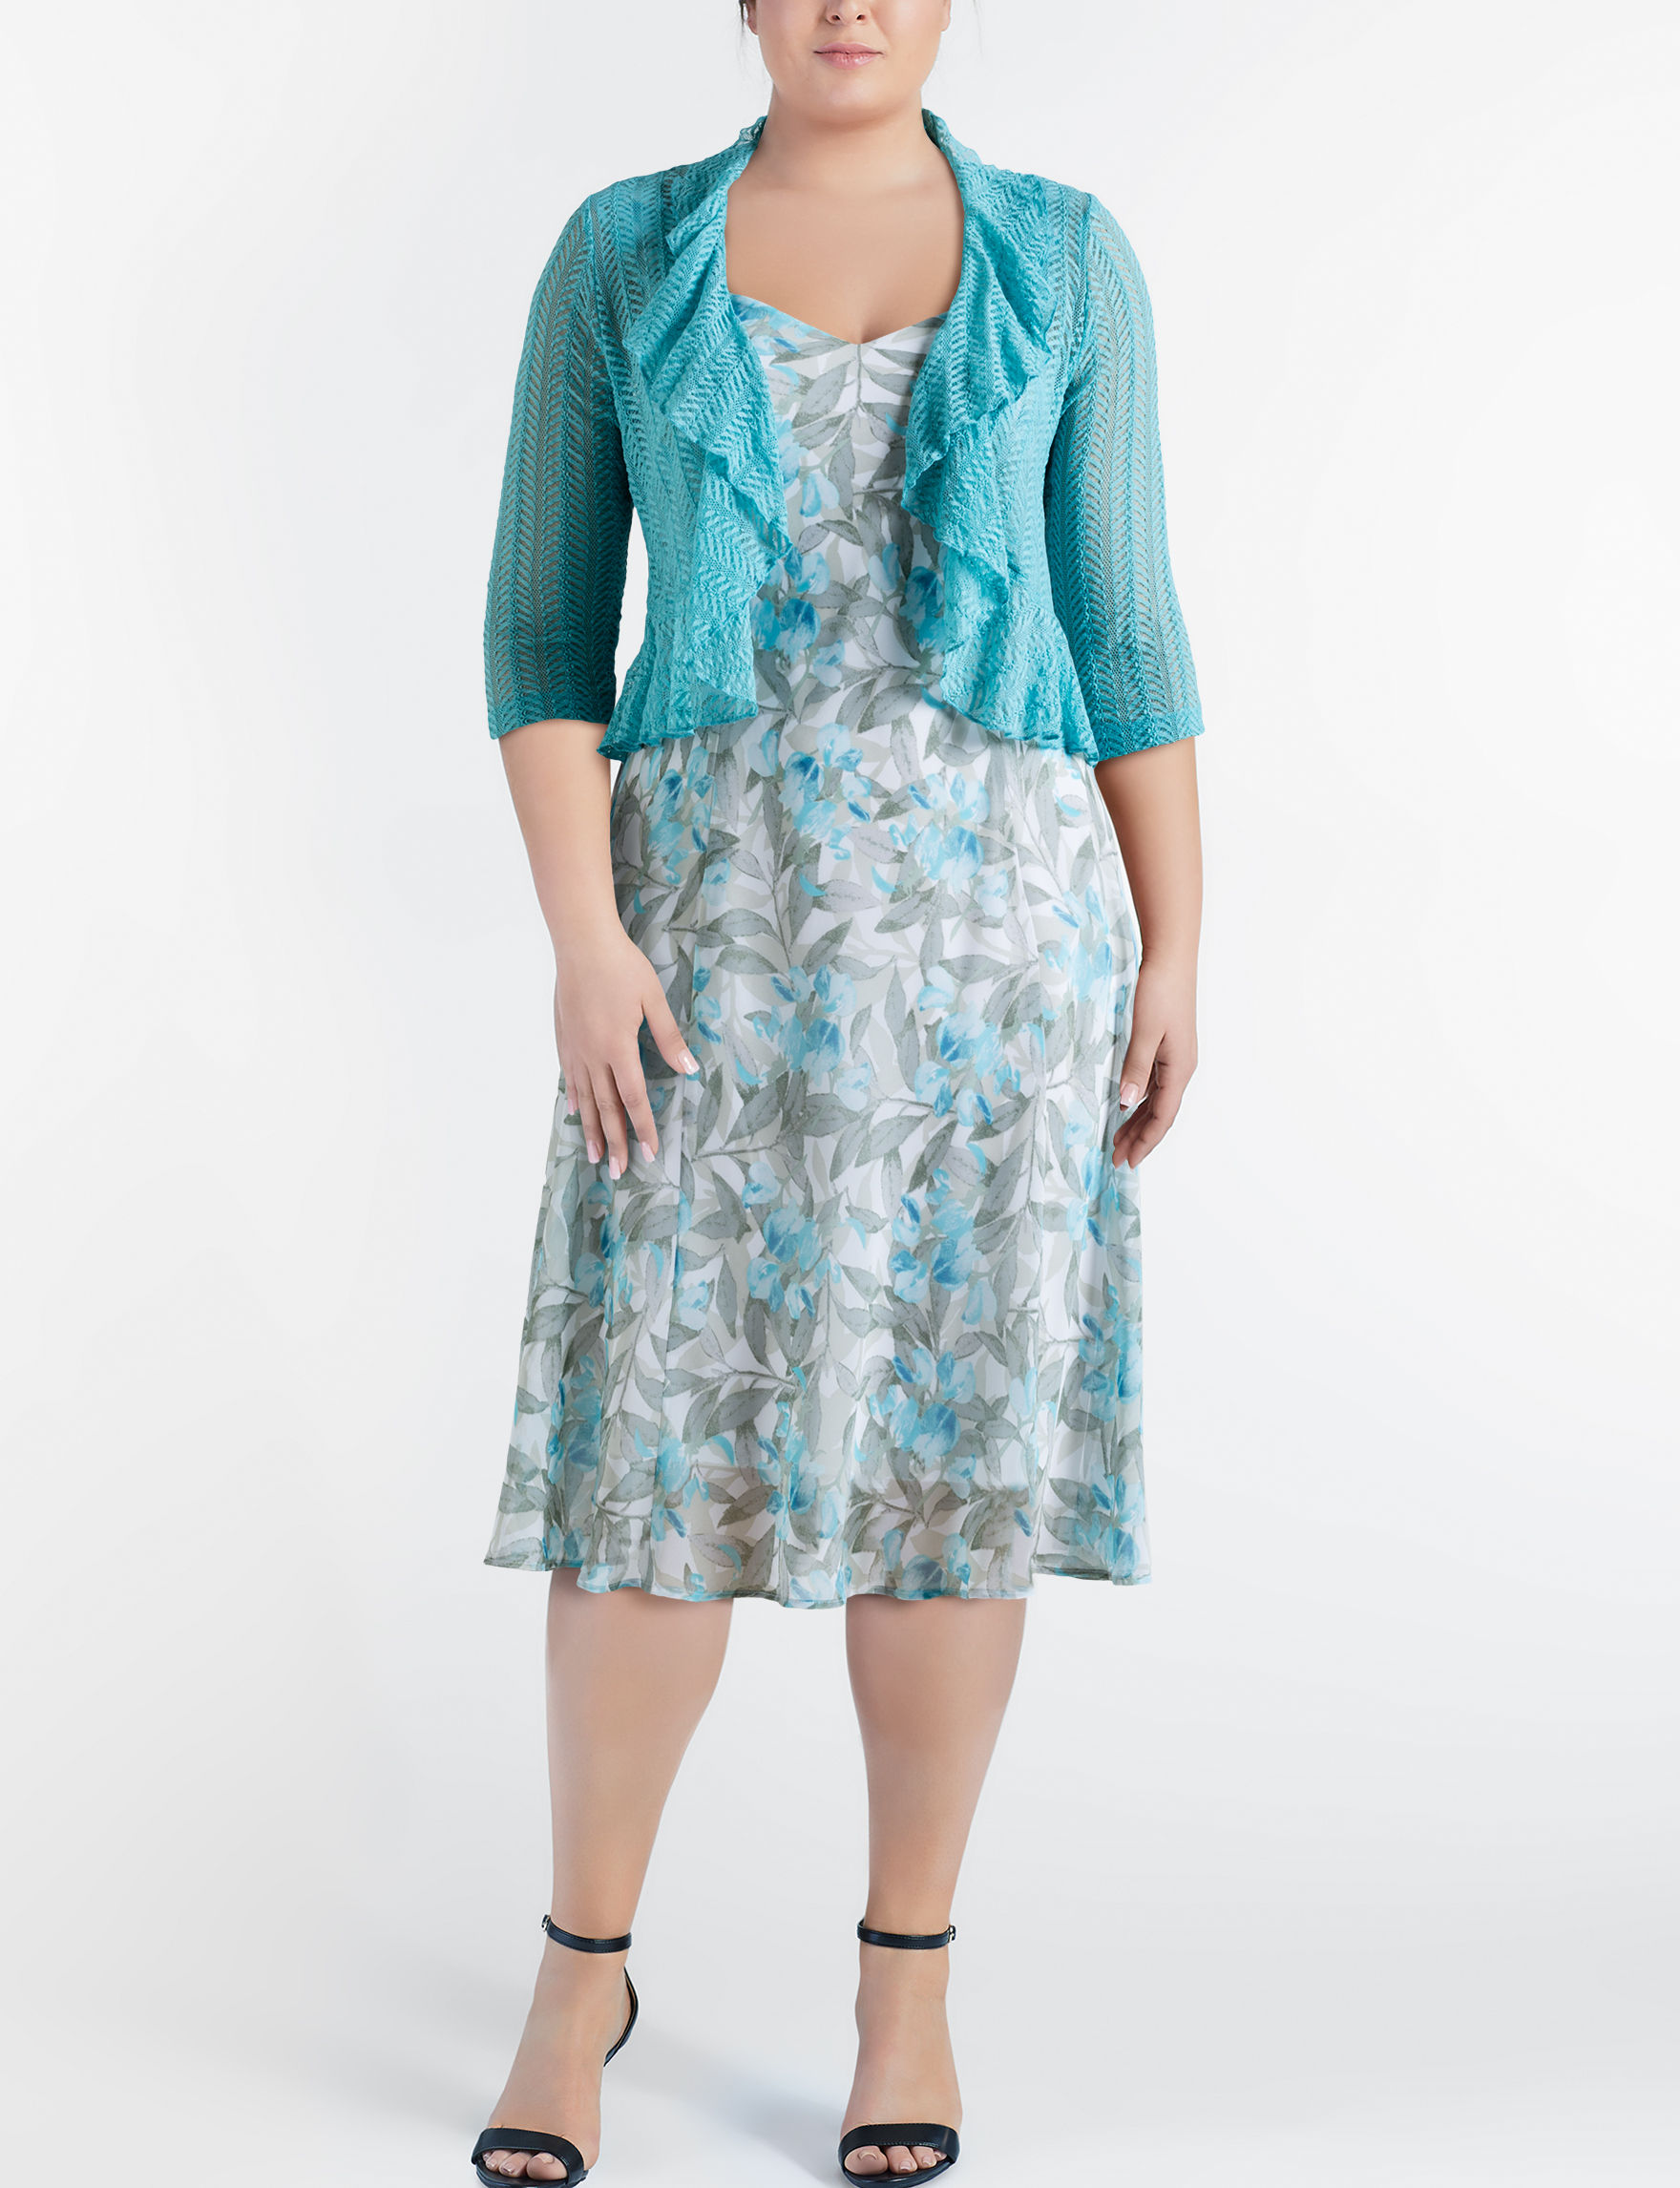 Connected Seafoam Everyday & Casual Jacket Dresses